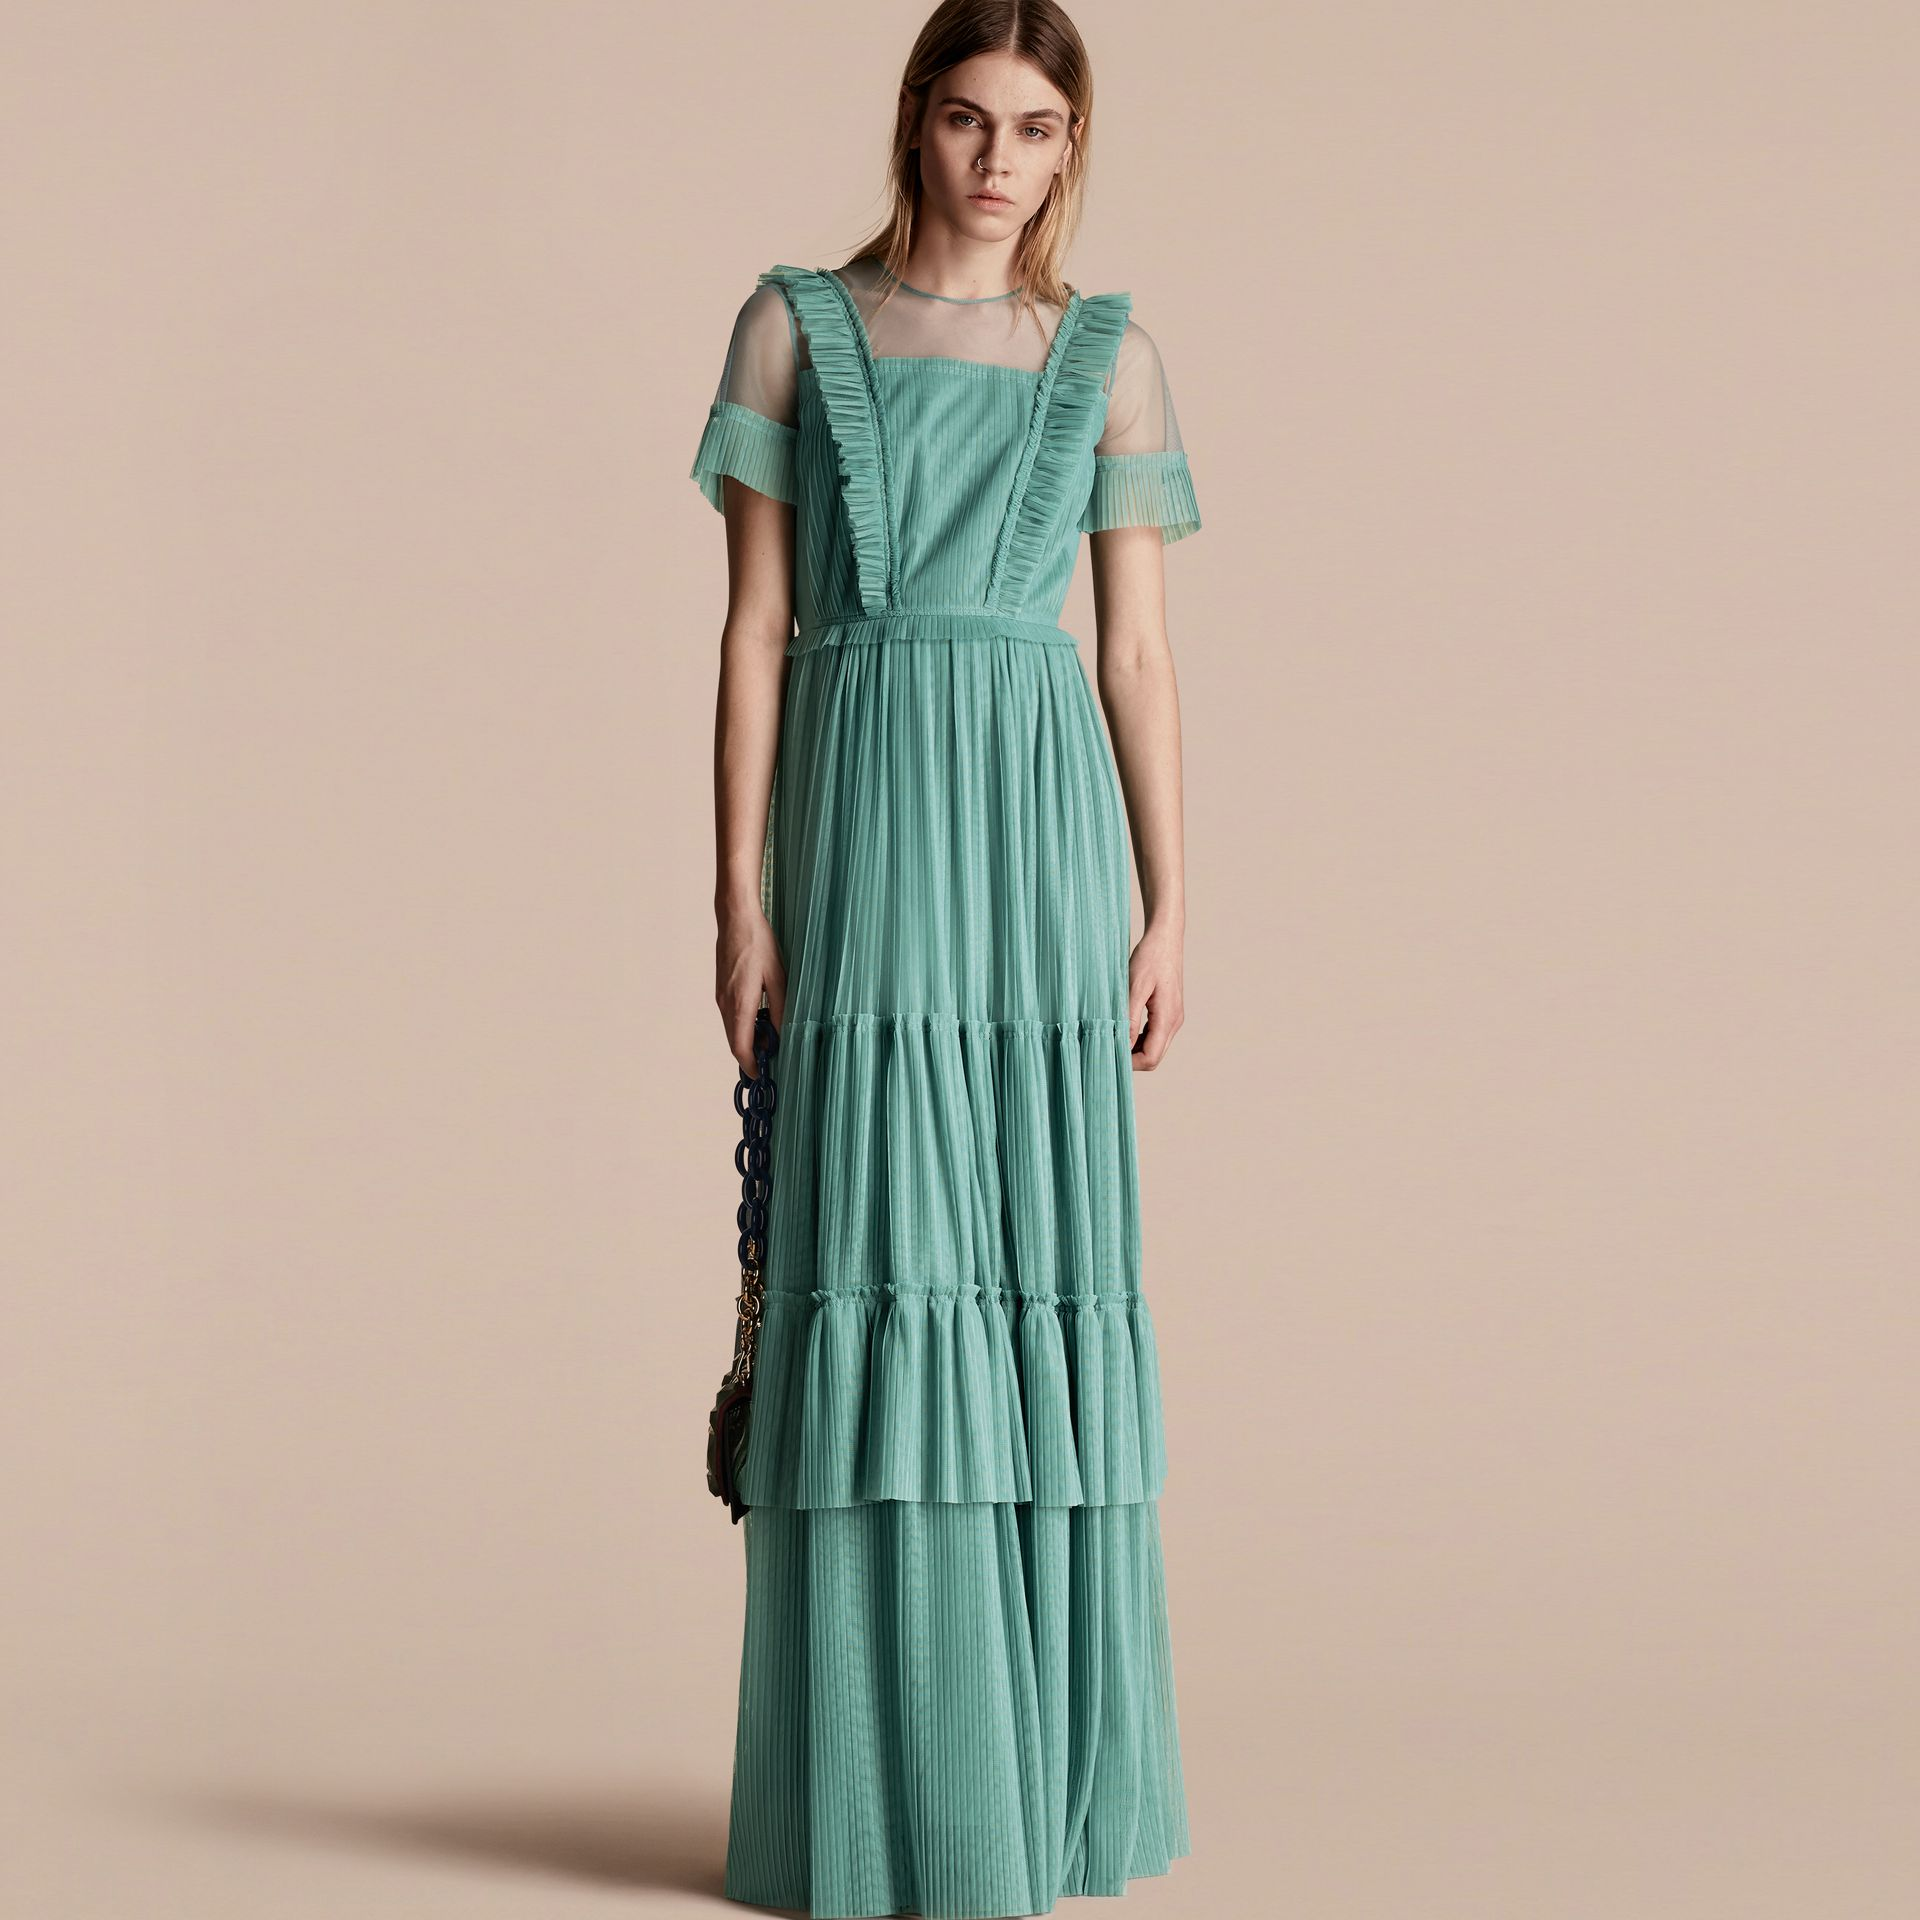 Ruffle Detail Floor-length Dress - gallery image 1